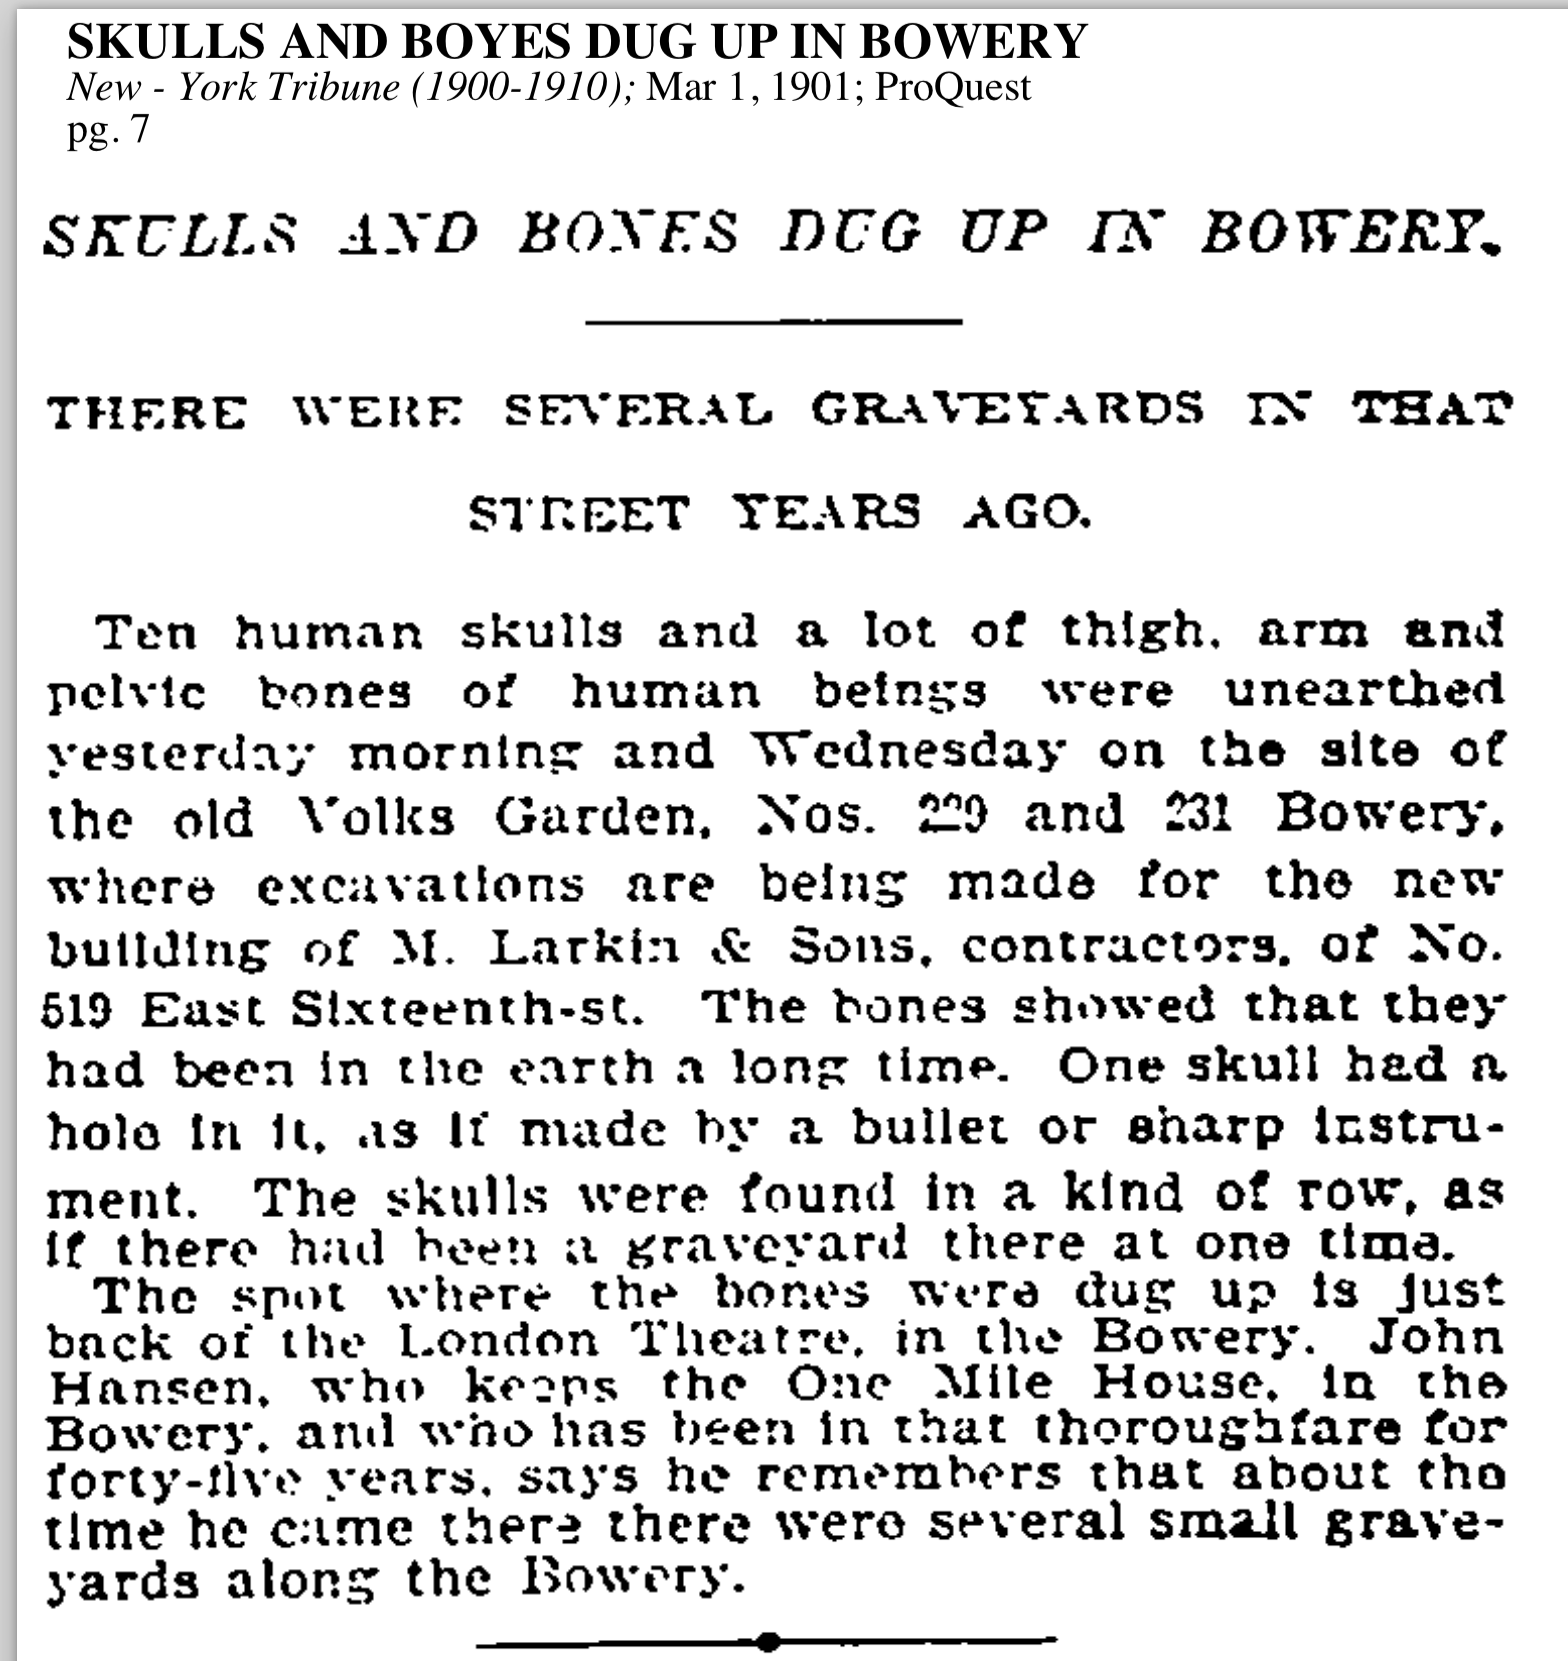 """""""SKULLS AND BONES DUG UP IN BOWERY."""" March 1, 1901."""